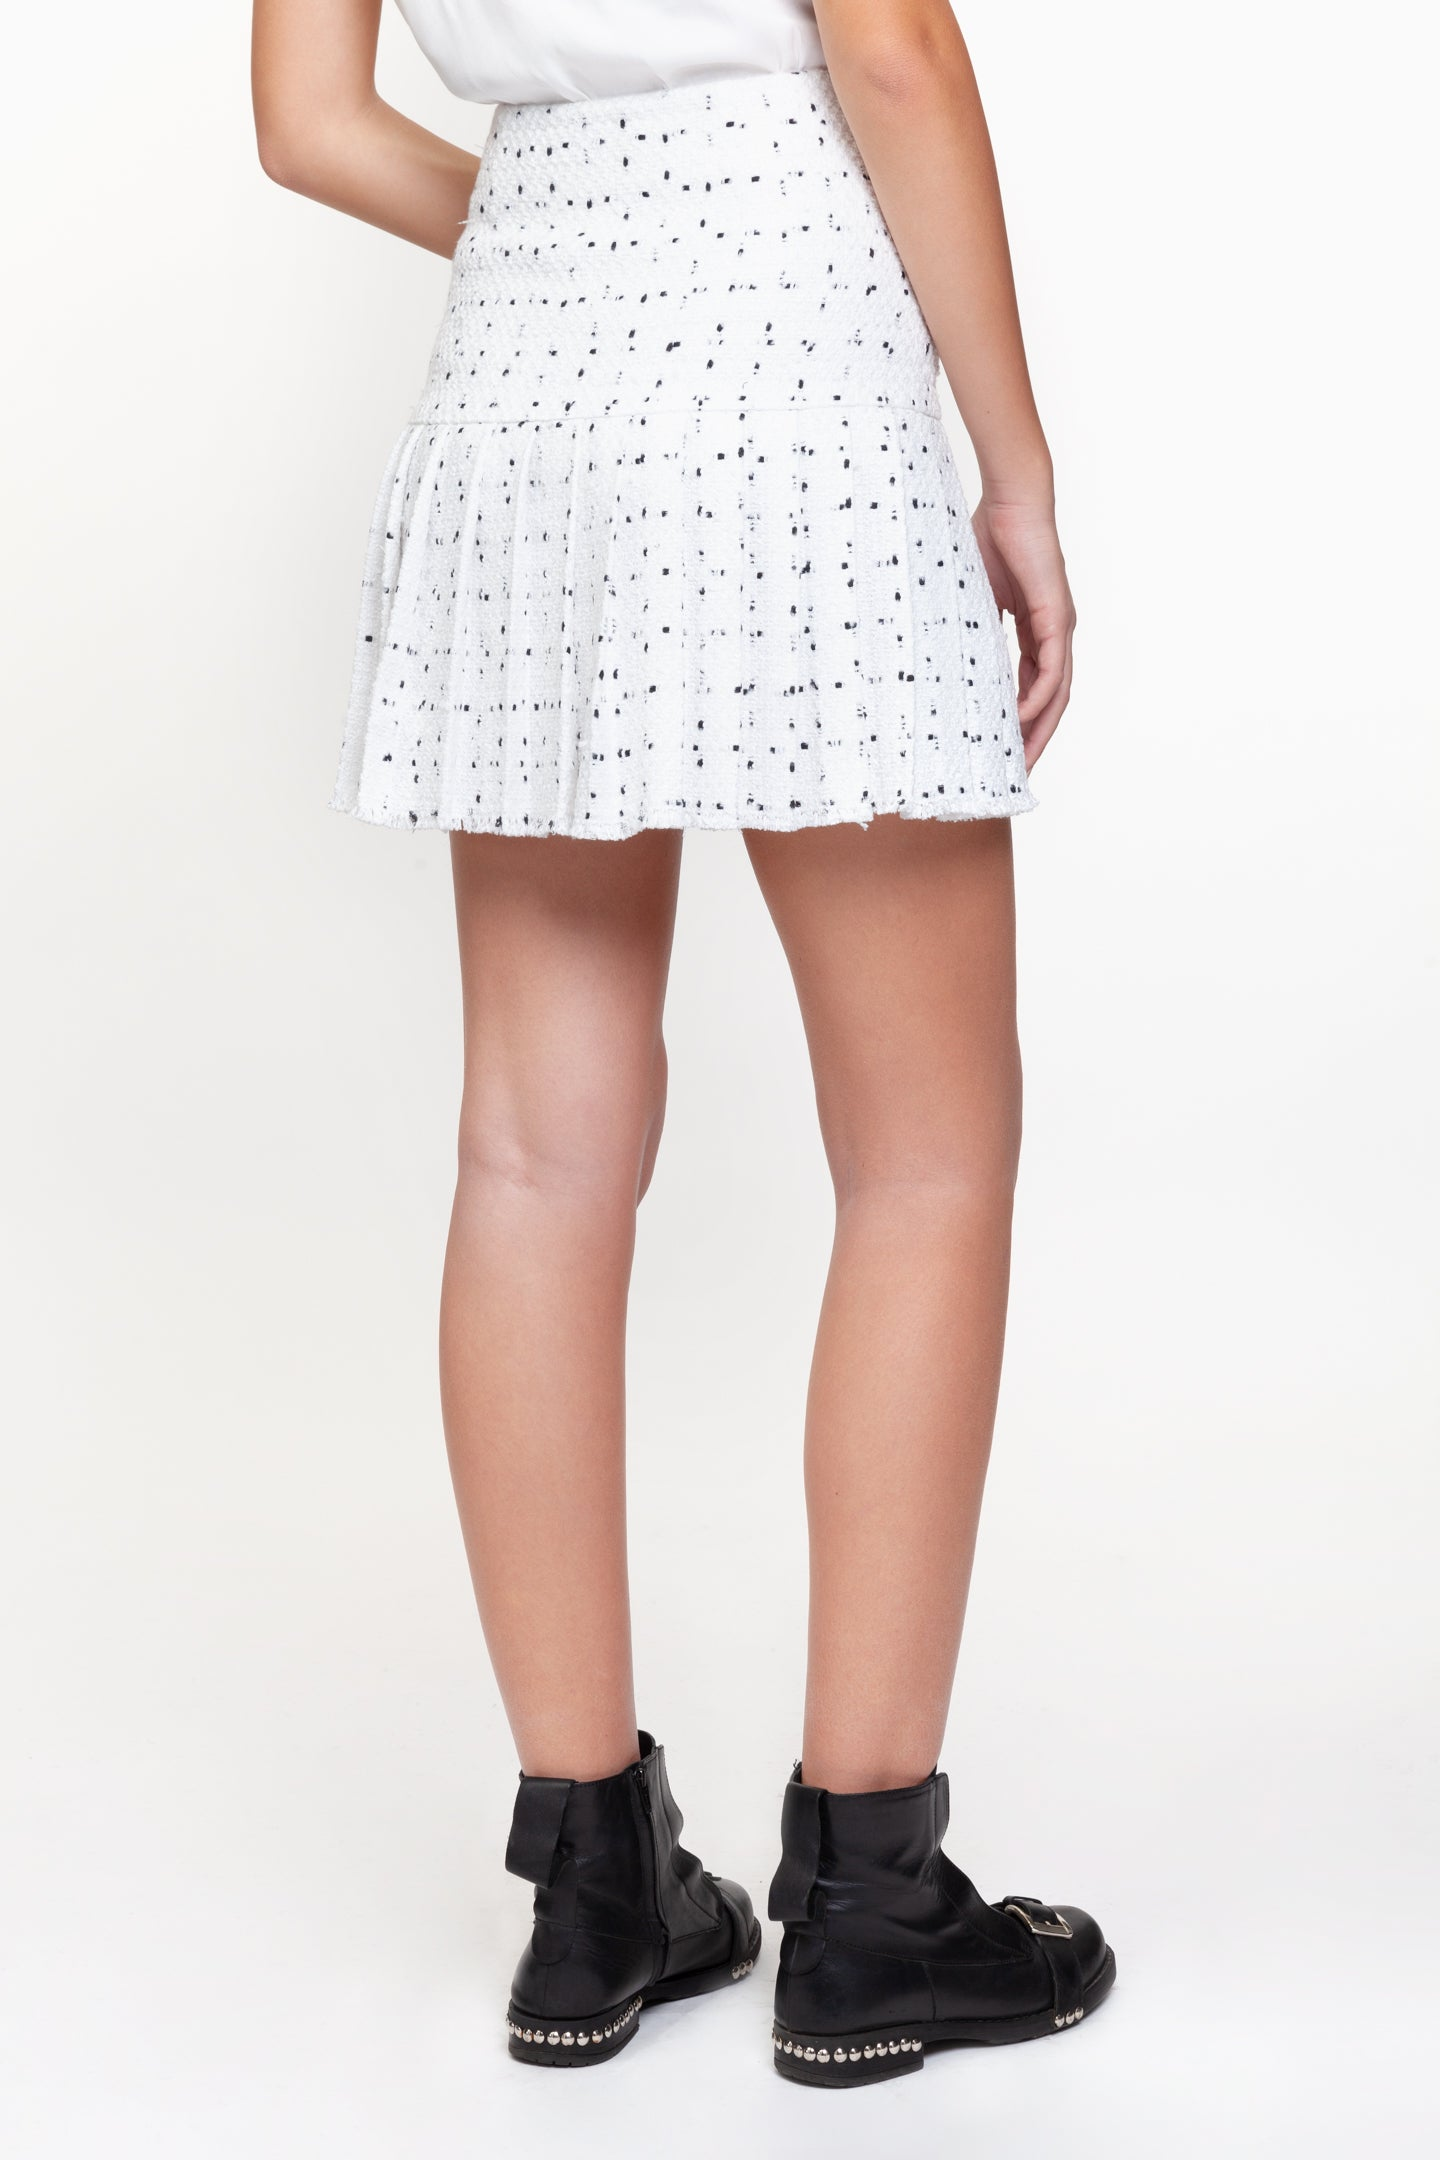 Elsie White Skirt